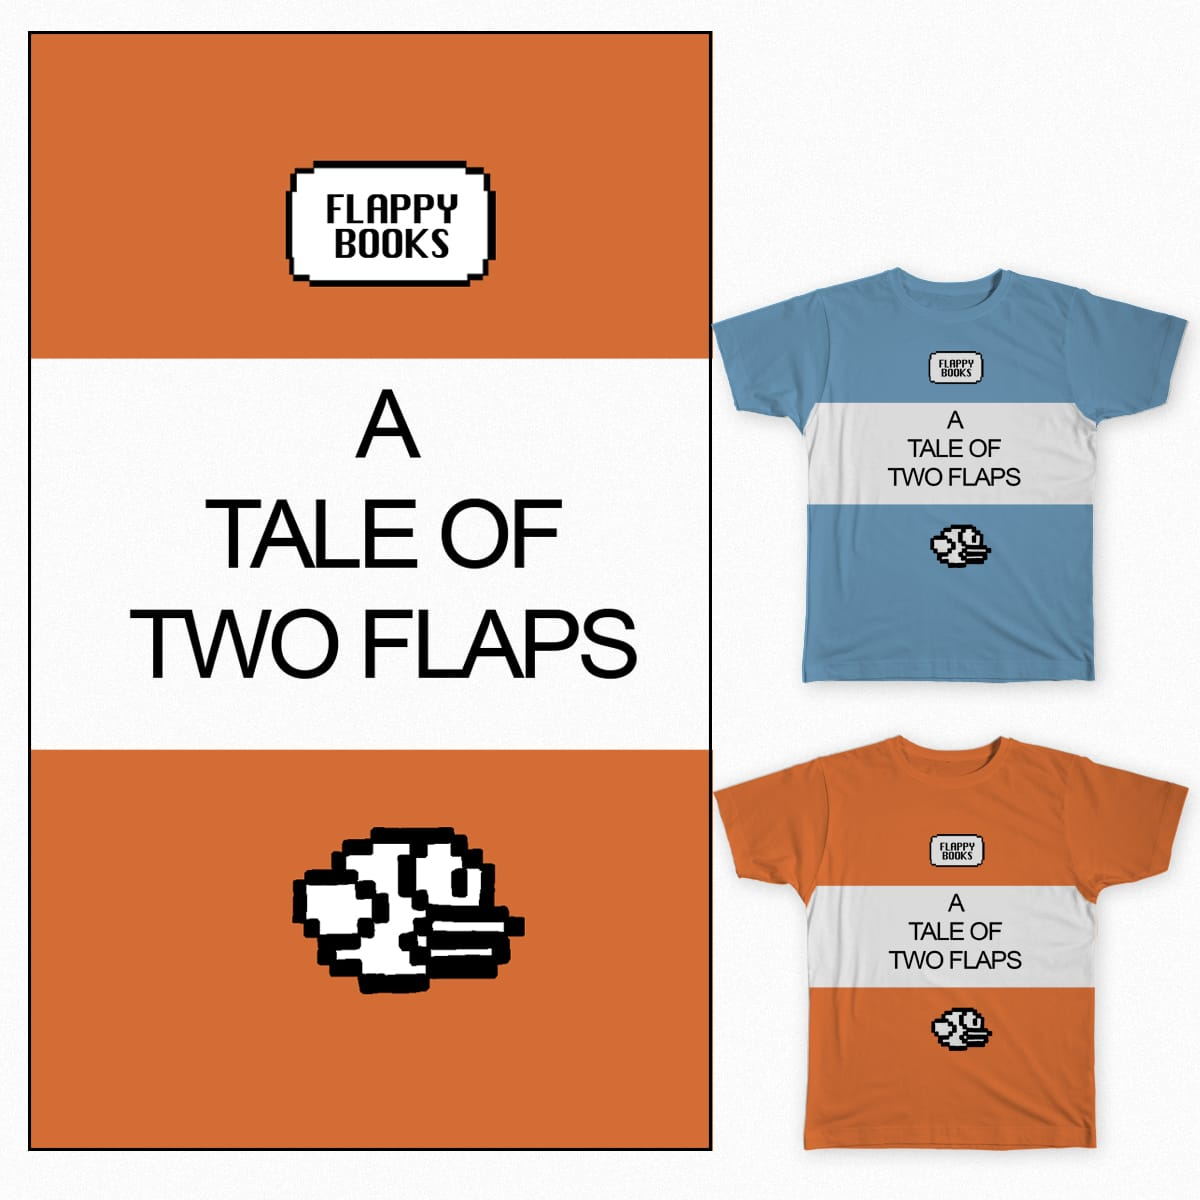 Flappy Books by Jubba14 on Threadless